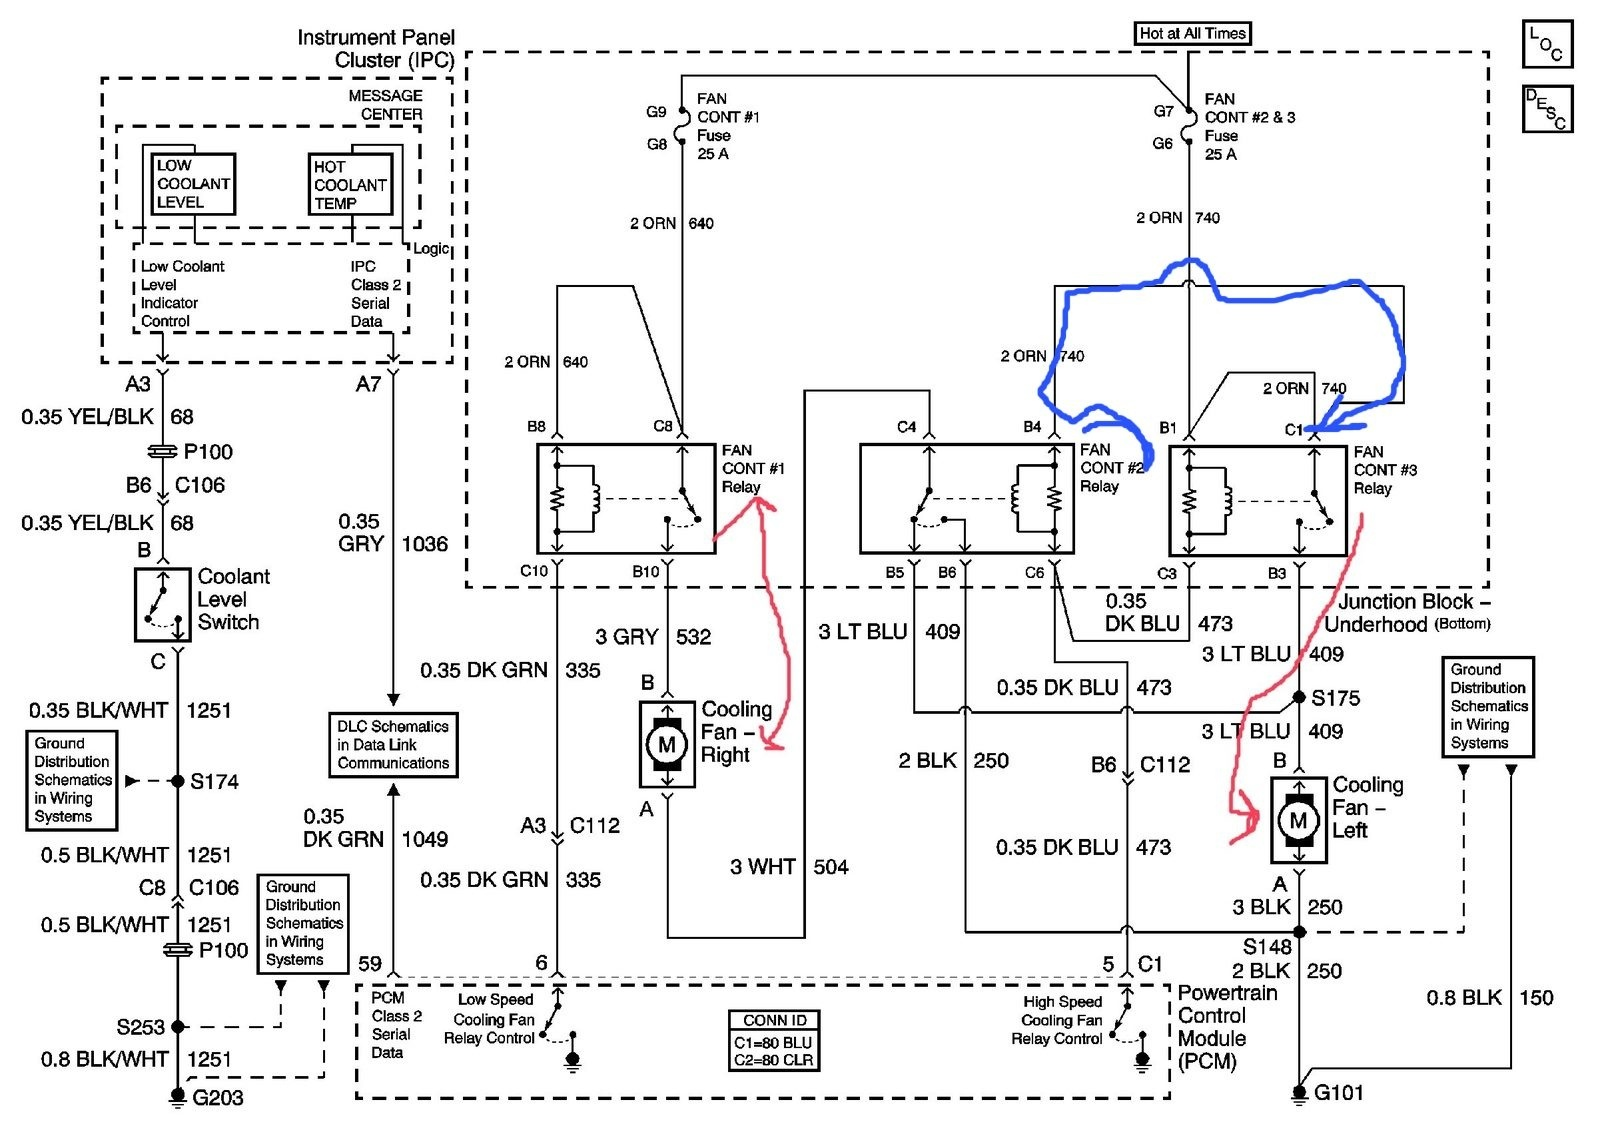 Wiring Diagram 2007 Tahoe Police All Kind Of Diagrams Fuse Chevrolet Impala Questions Location Cooling Fan Relay Cargurus Gmc Truck Chevy